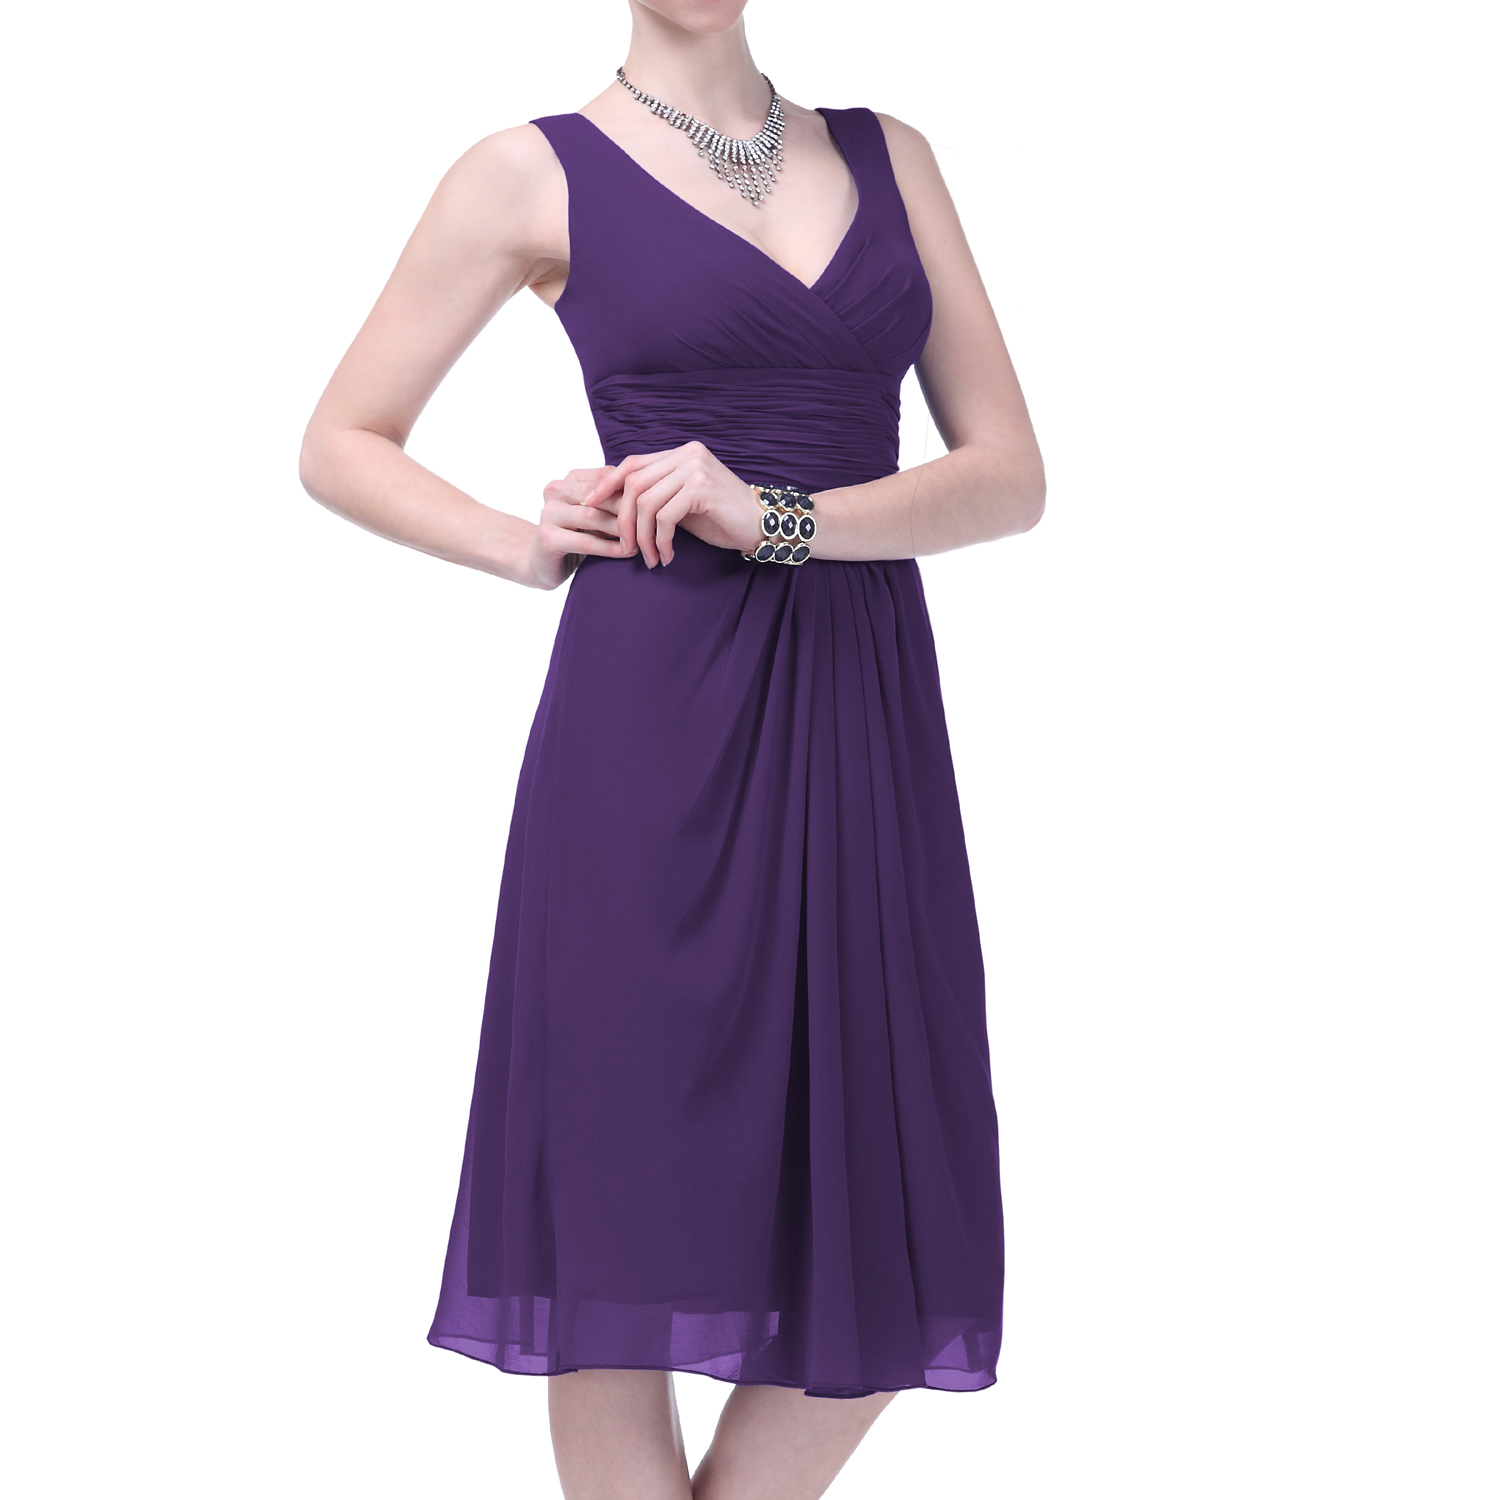 Formal Dress V-neck Elegant Evening Gown Bridesmaid Wedding Party ...